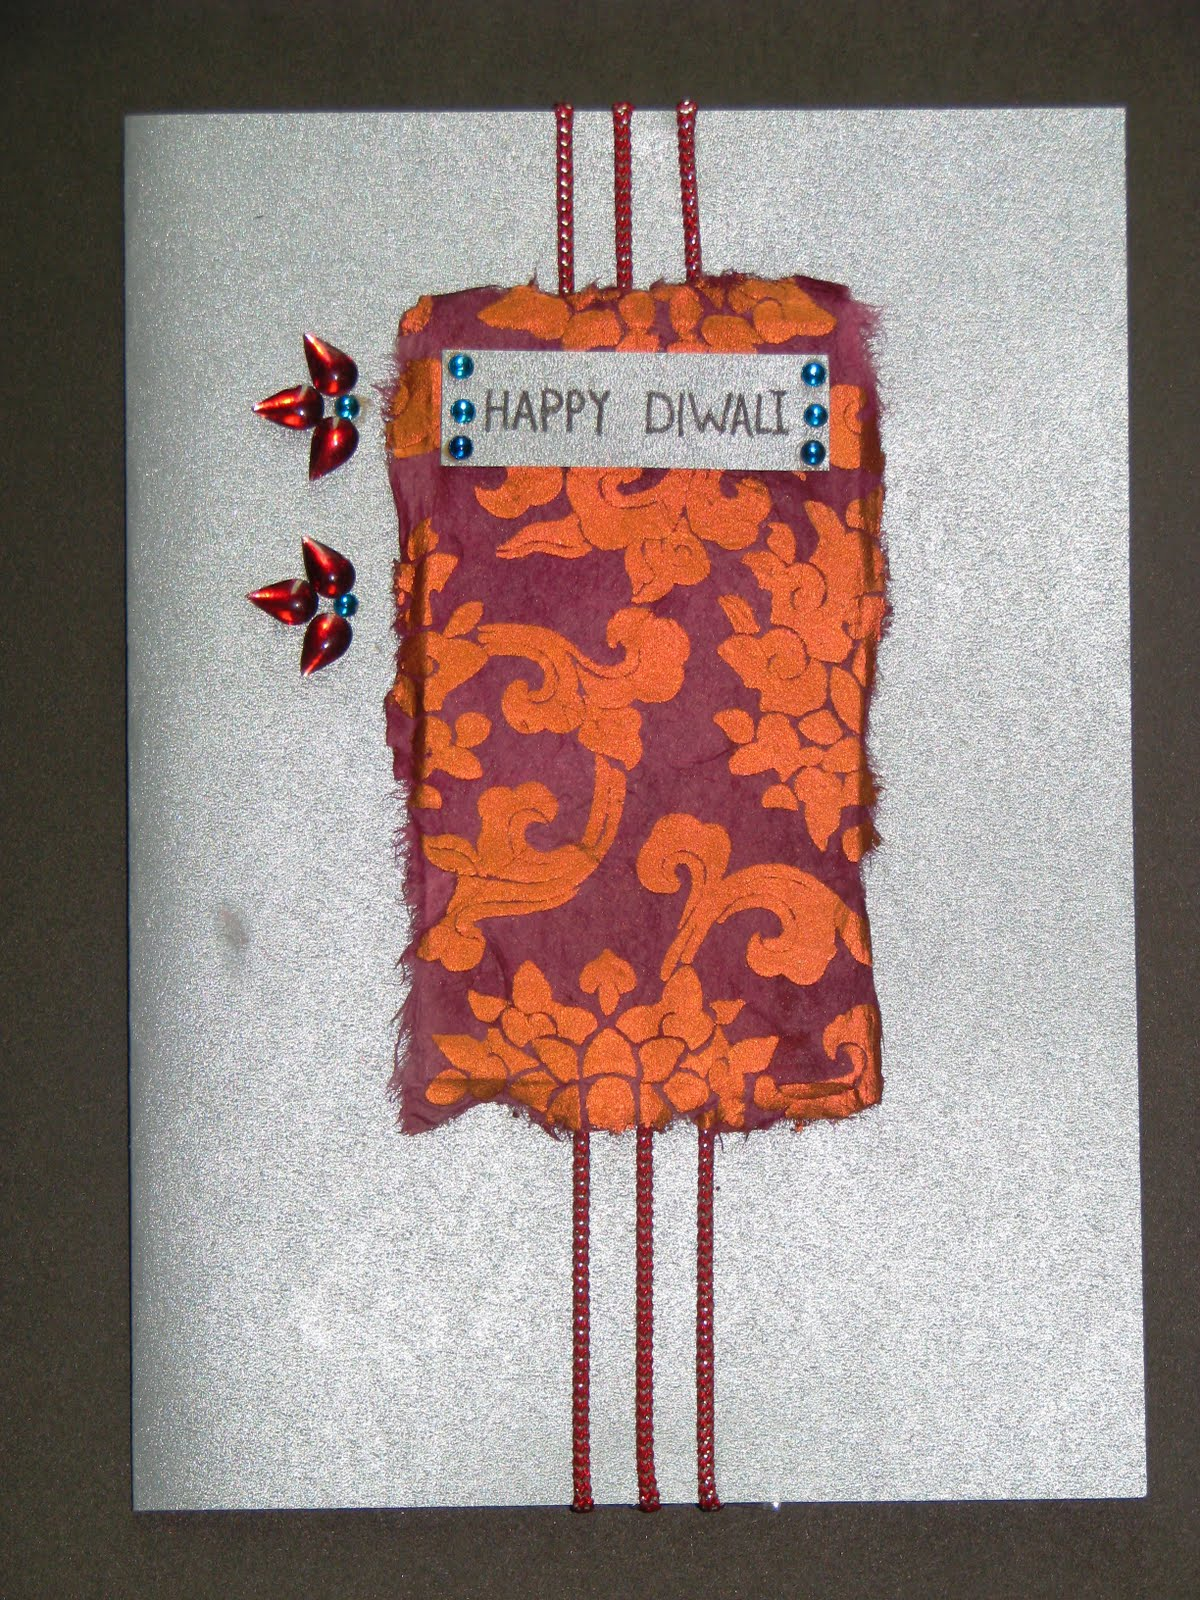 As The Festival Coming Sometime In November I Want To Make Some Diwali Card For My Family So Thought From 2 Sketches 4 You Sketch